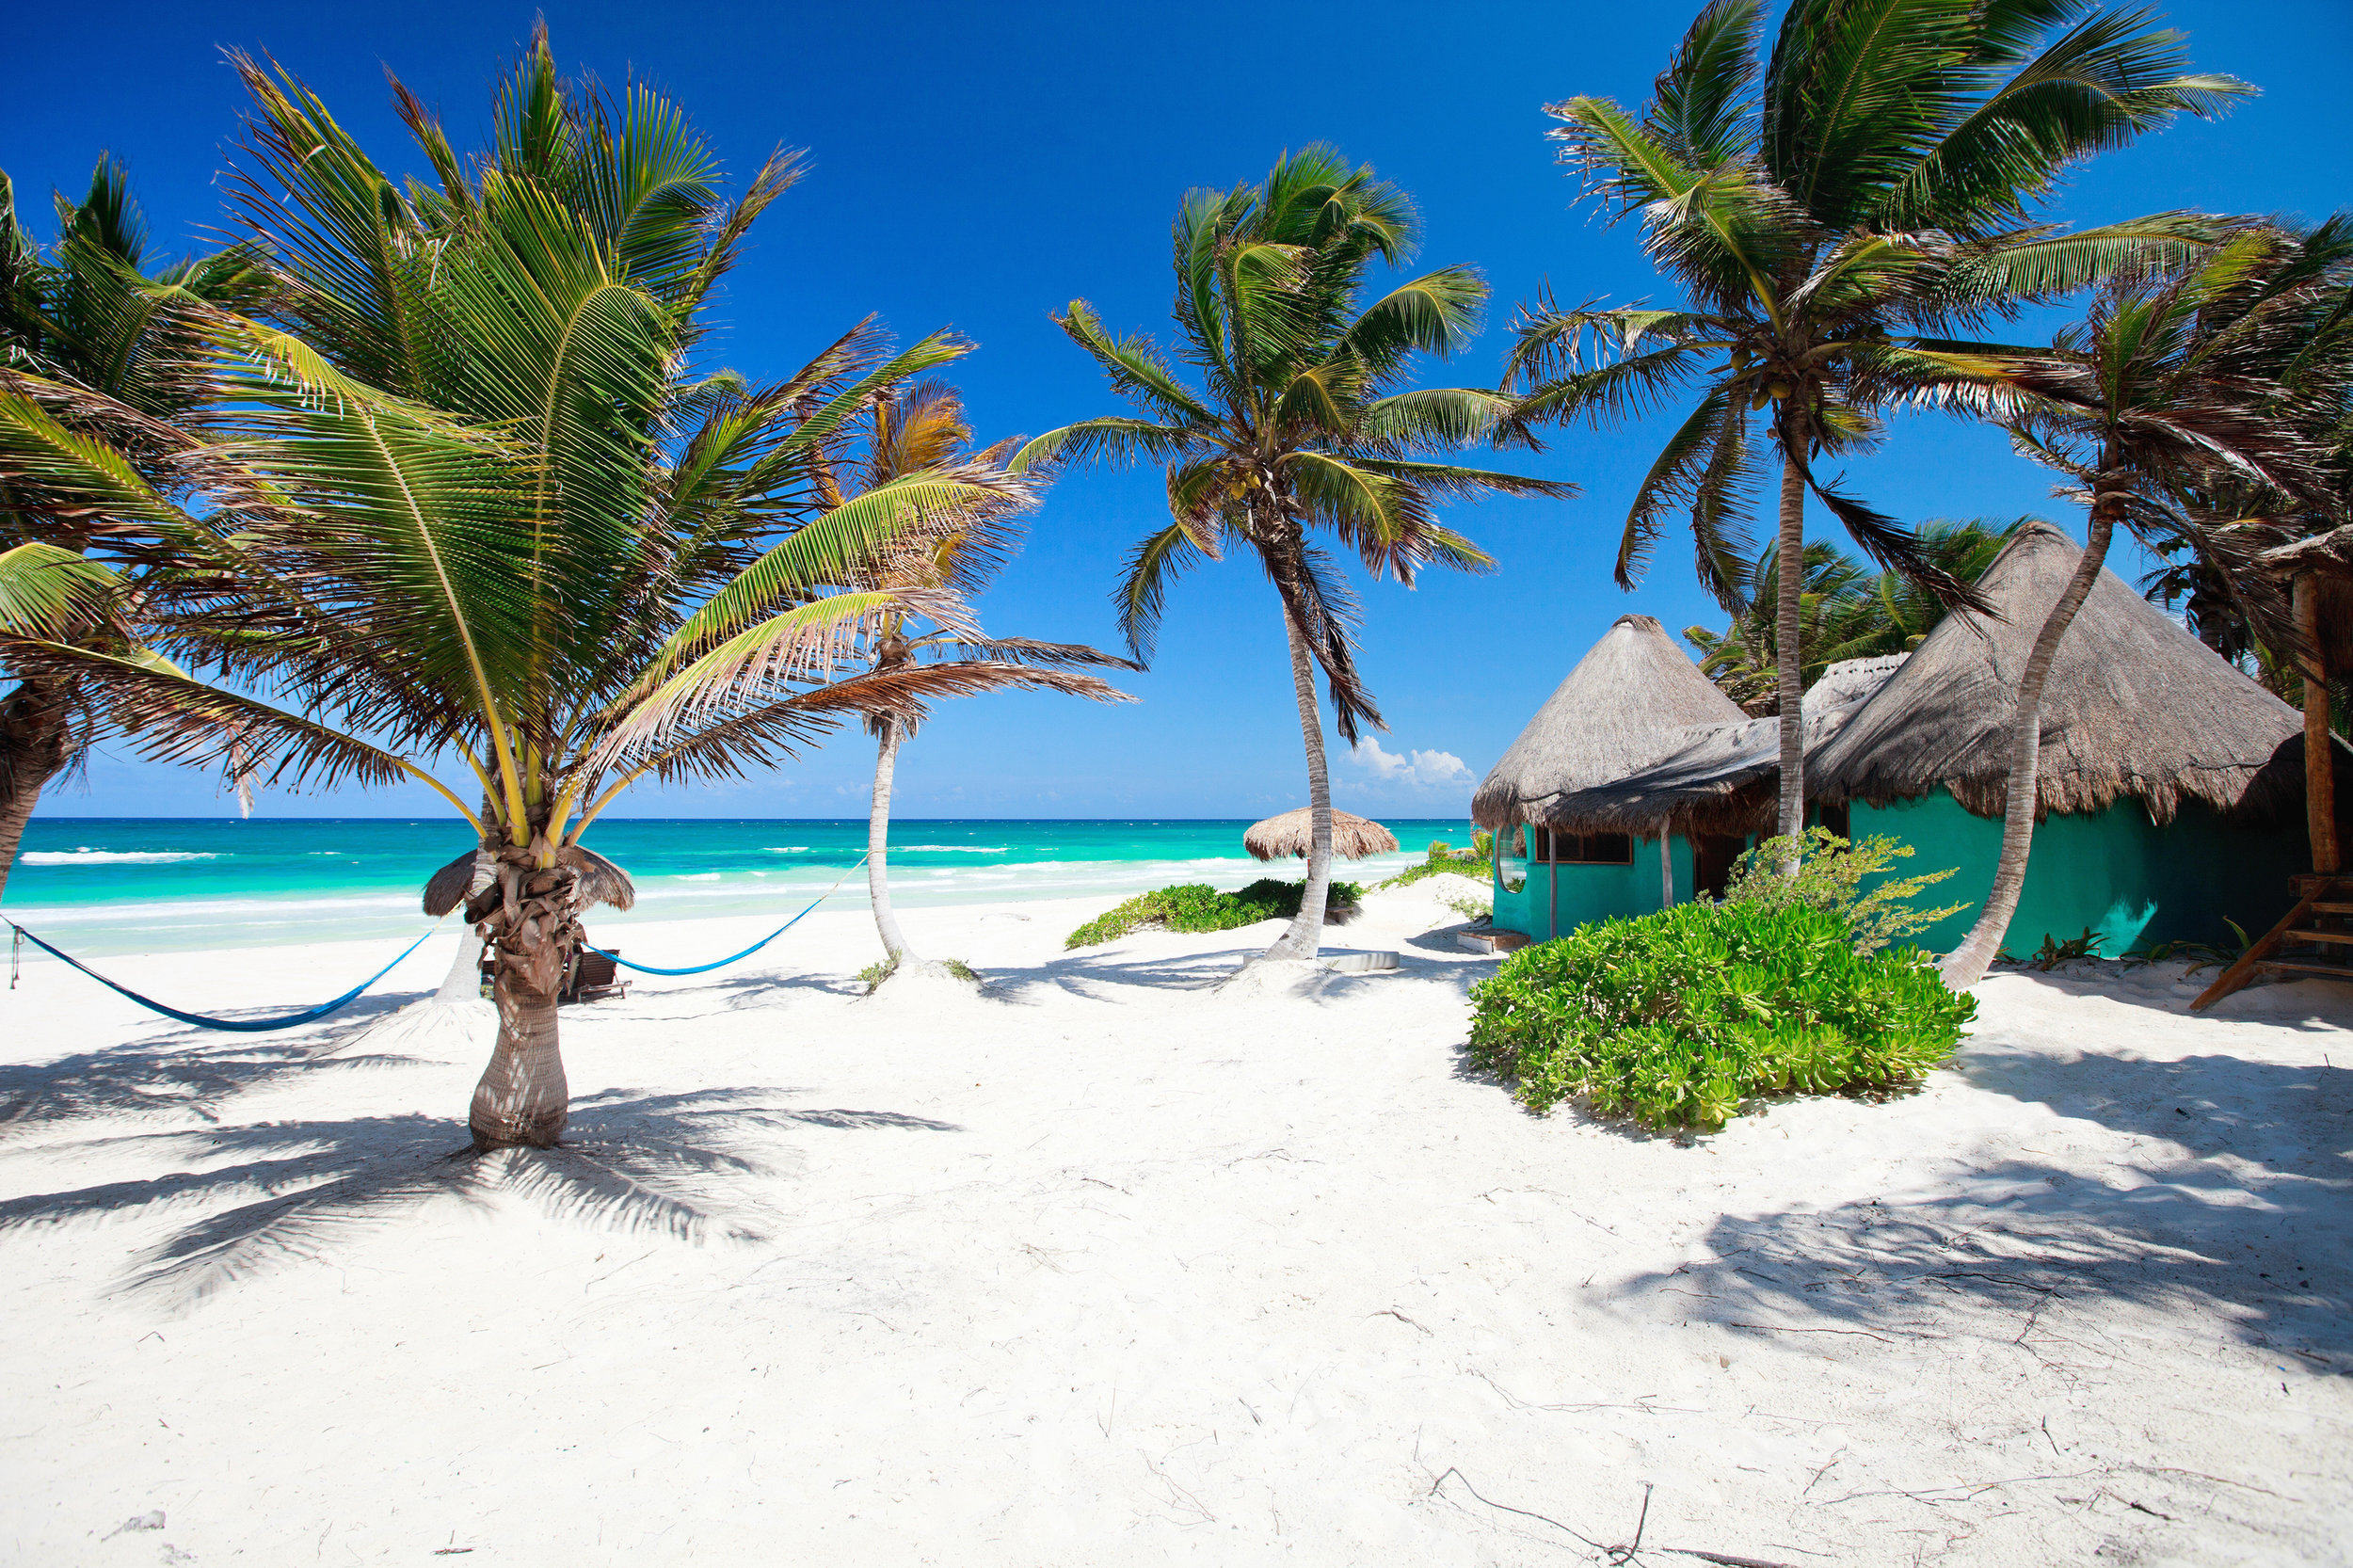 bigstock-Perfect-Caribbean-beach-in-Tul-21667127.jpg